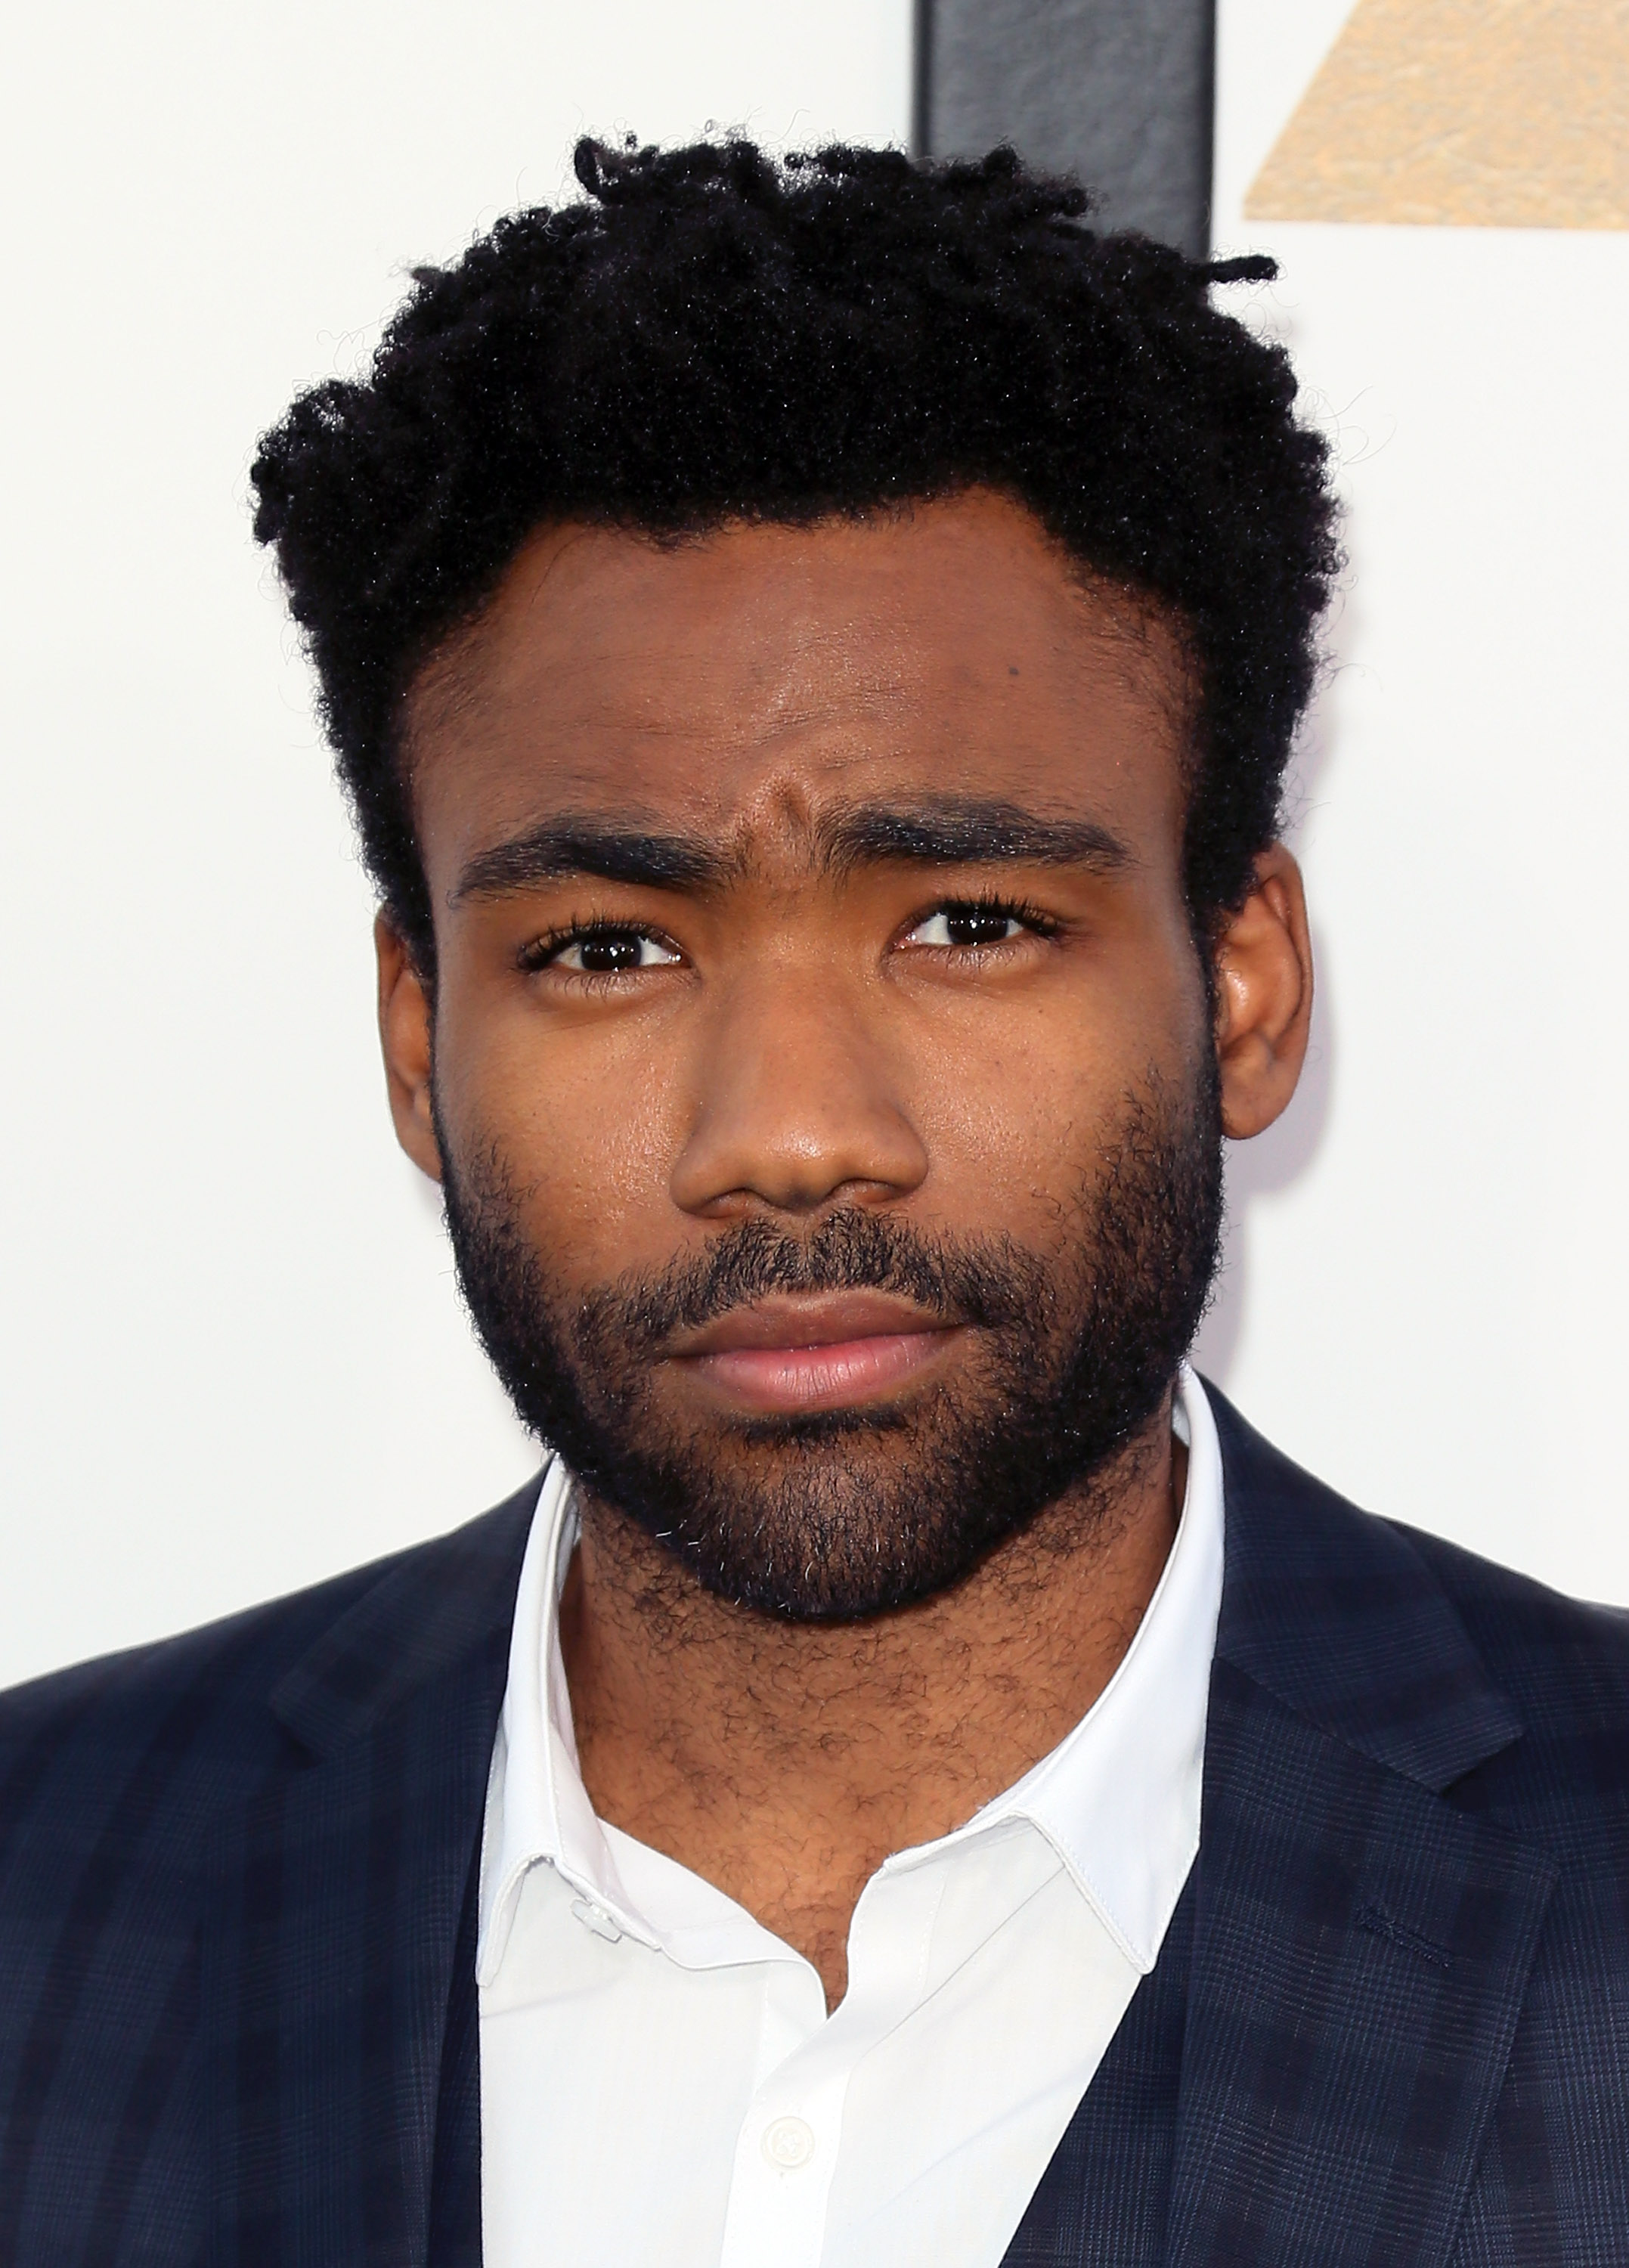 Donald Glover attends the premiere of Warner Bros. Pictures'  Magic Mike XXL  at the TCL Chinese Theatre IMAX on June 25, 2015 in Hollywood, California.